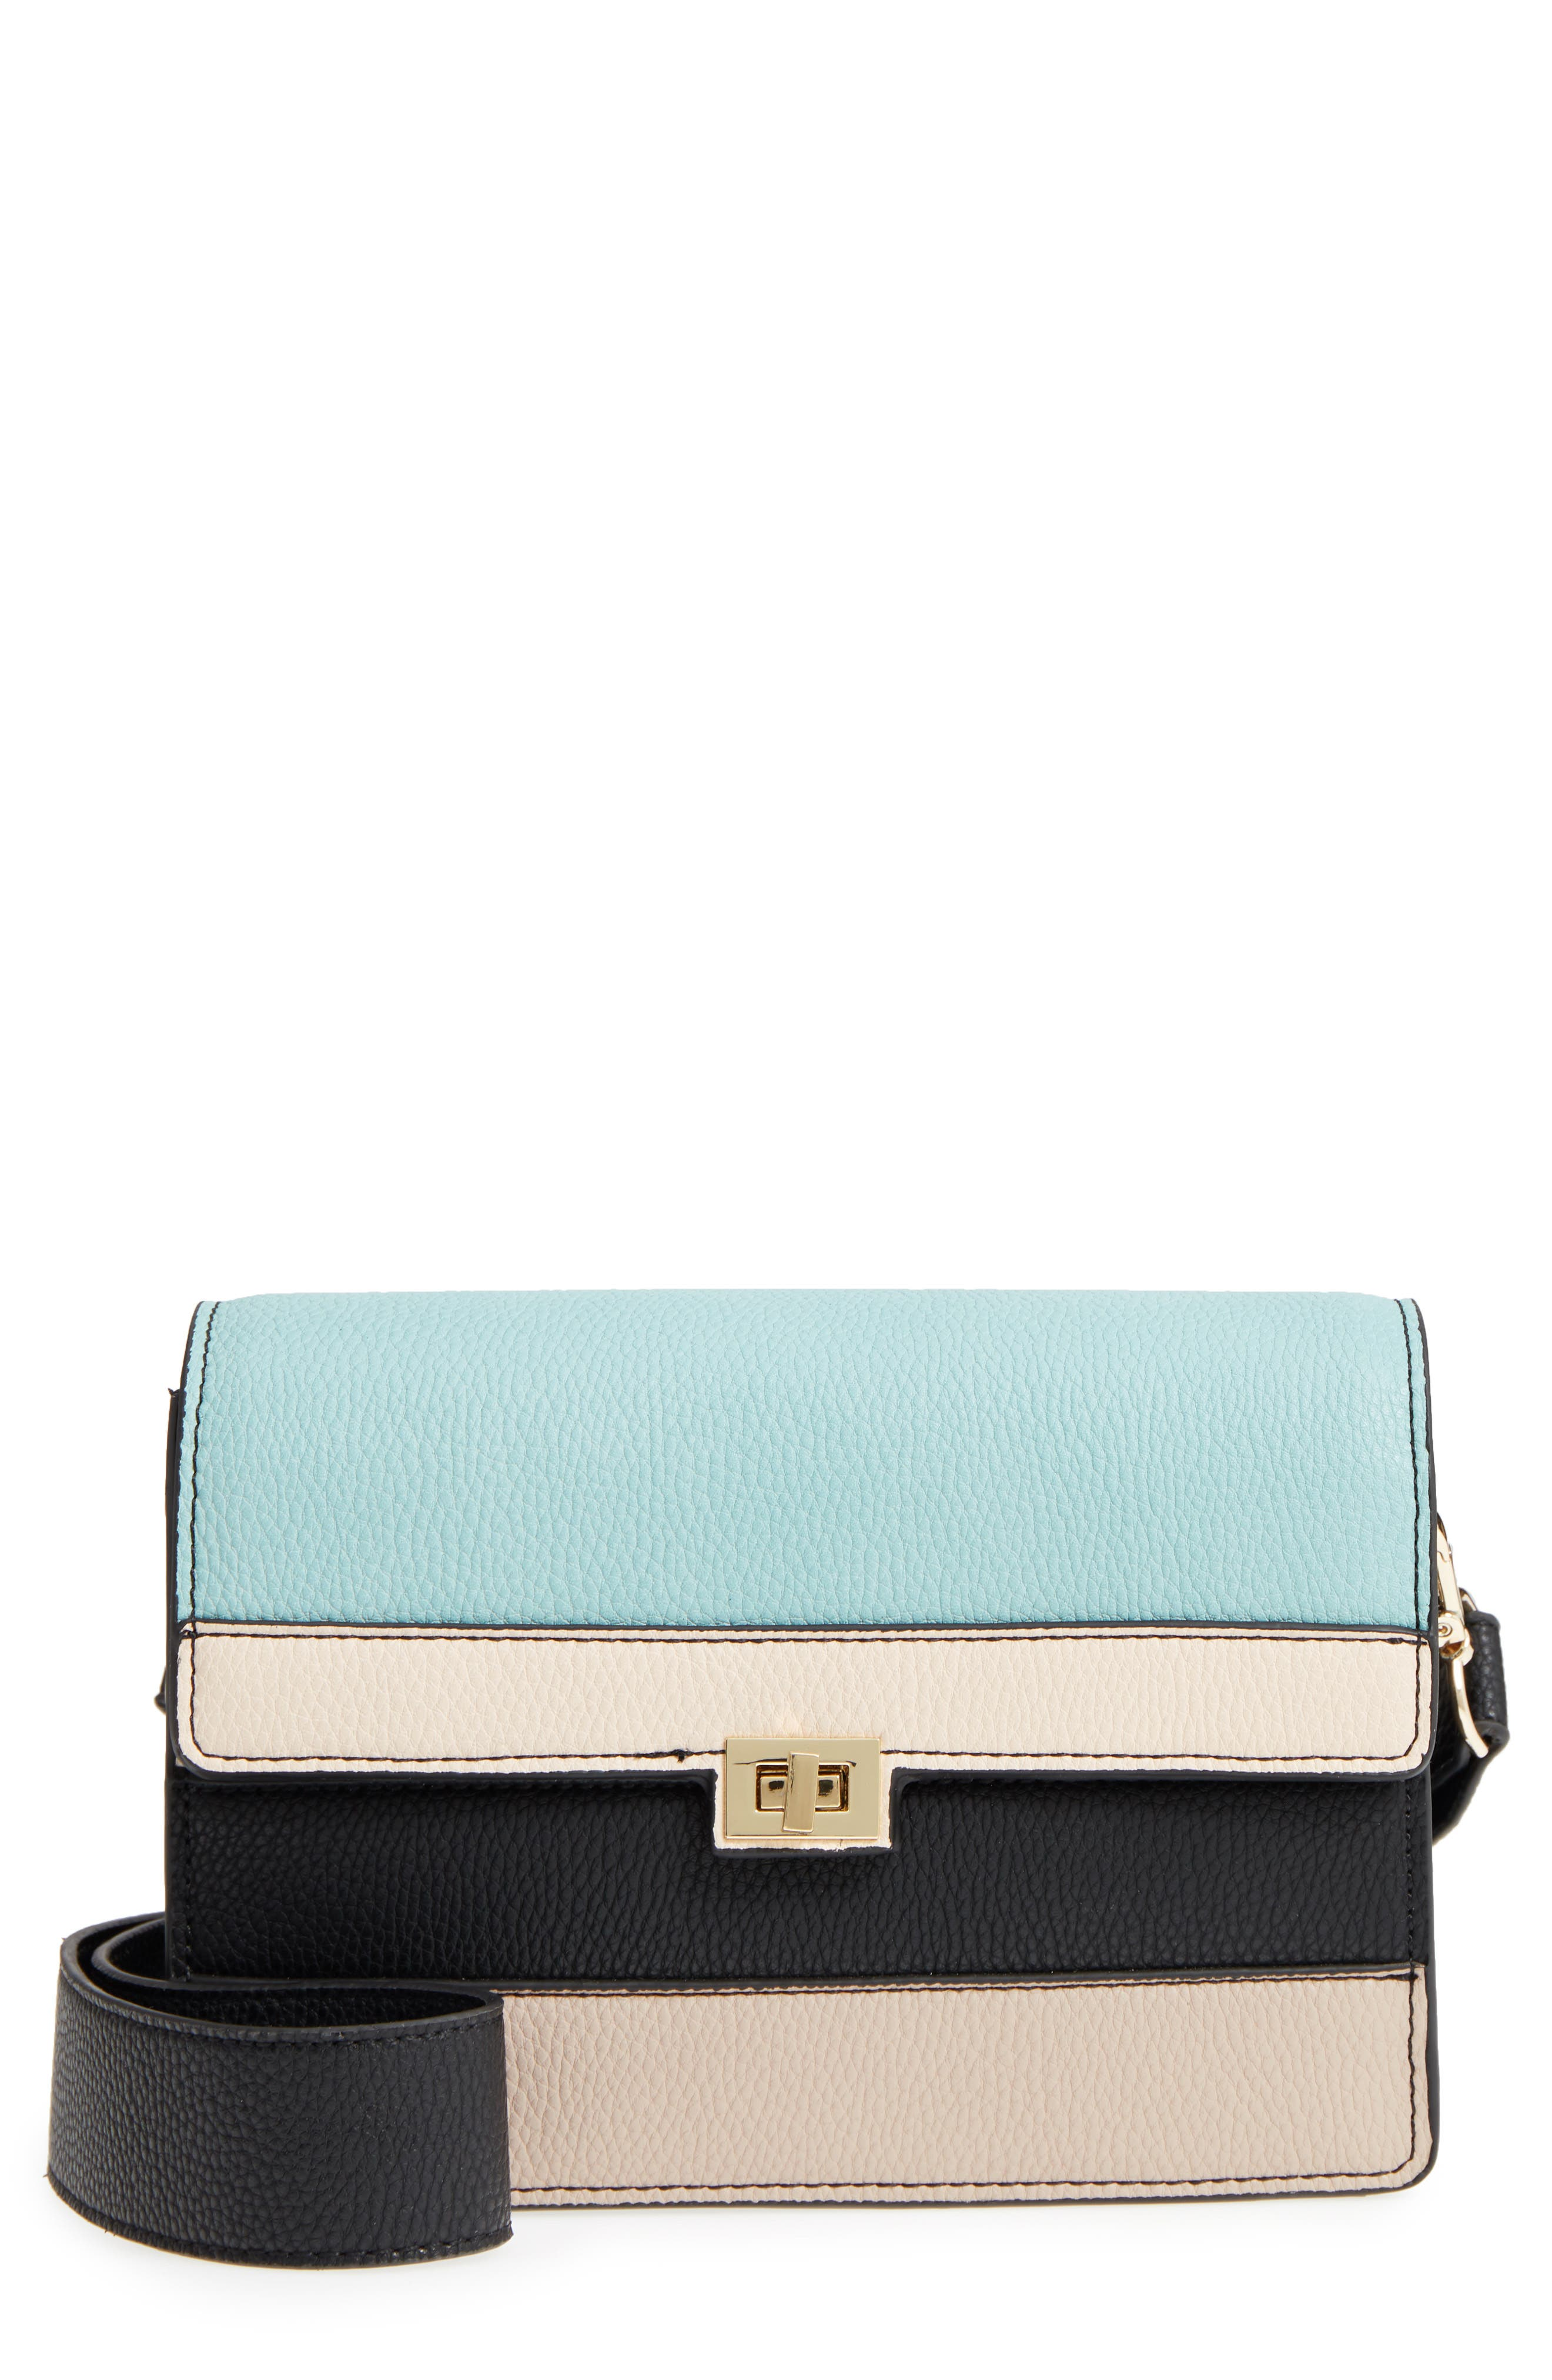 Sari Crossbody Bag,                             Main thumbnail 1, color,                             960